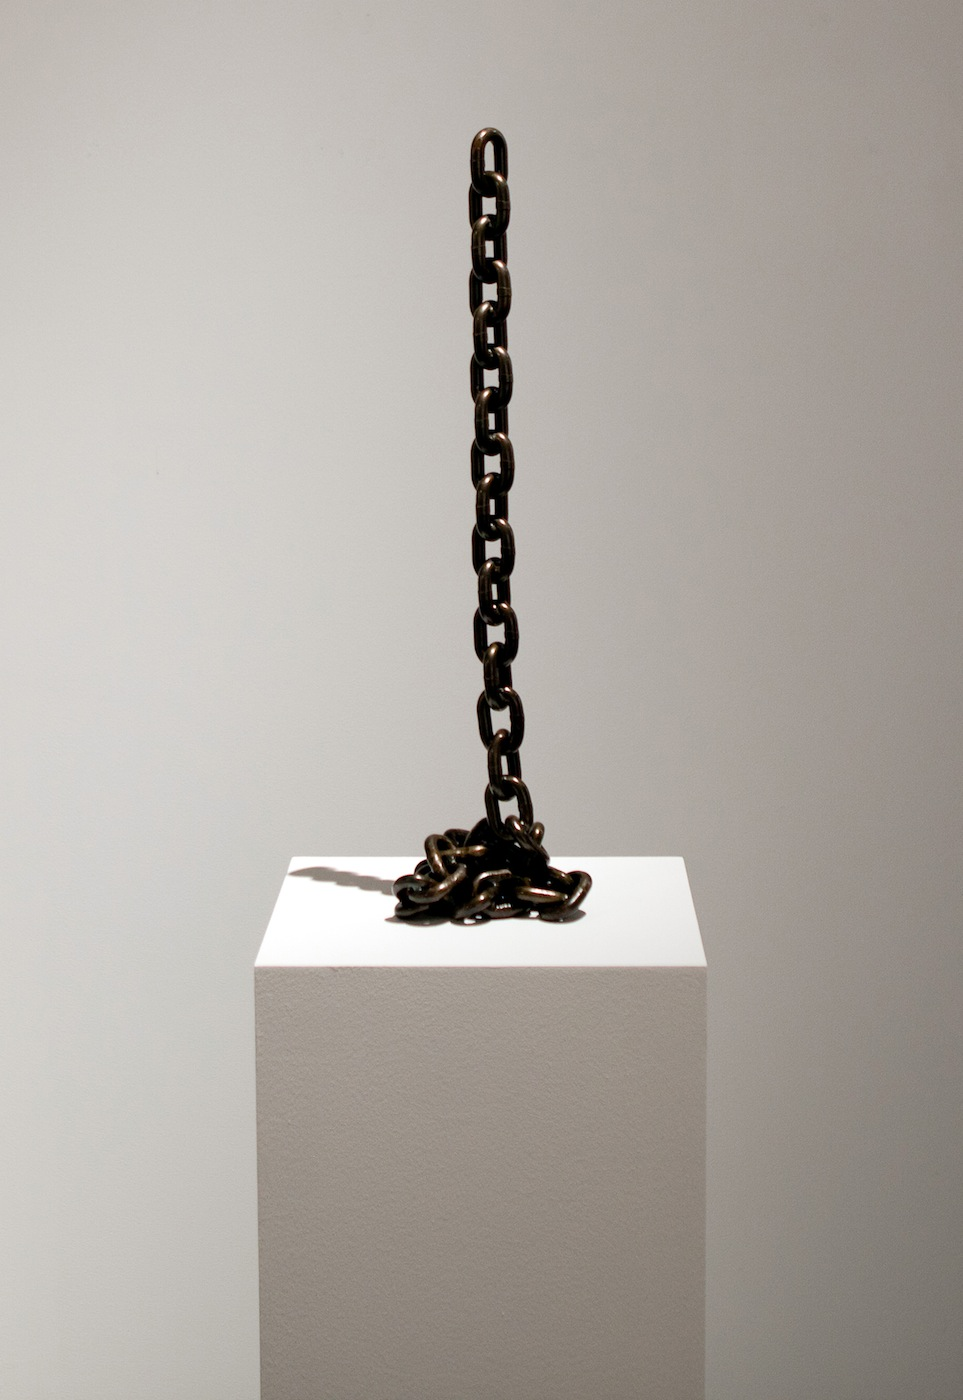 Judith Hopf  Endings 2011 Iron, Varnish  100 cm tall